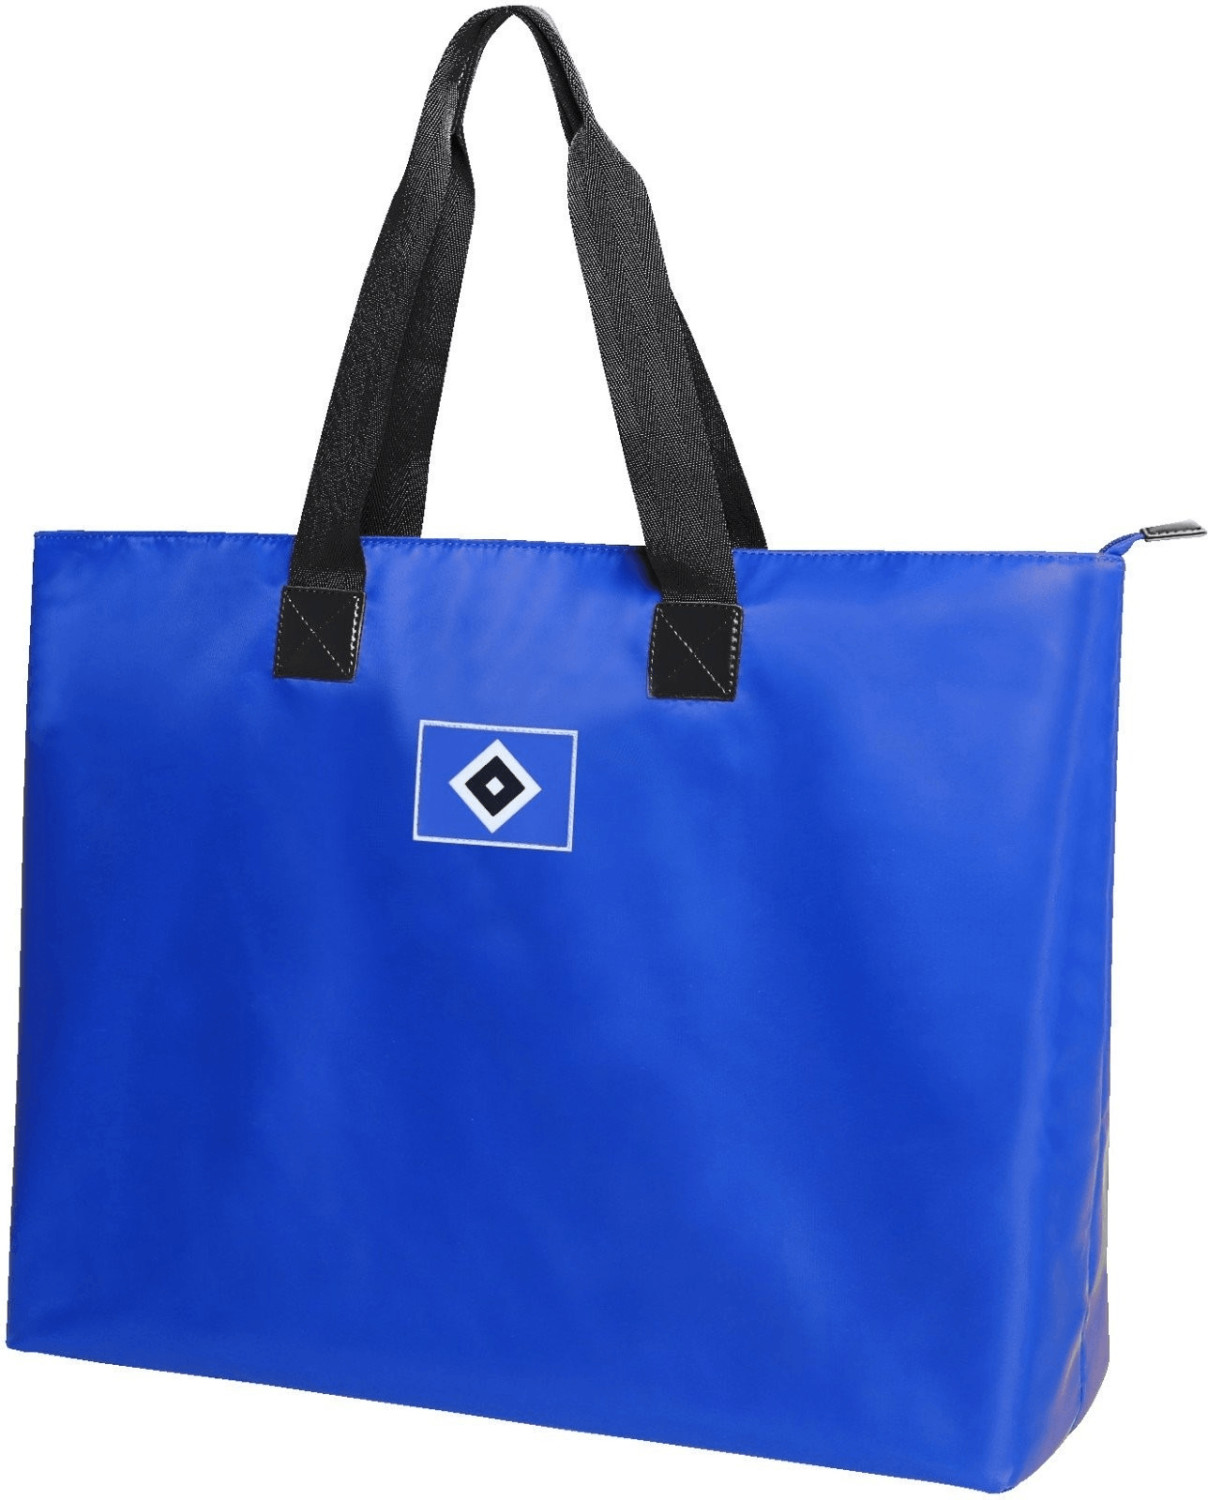 Markenmerch Shopping Bag Hamburger SV (78400)